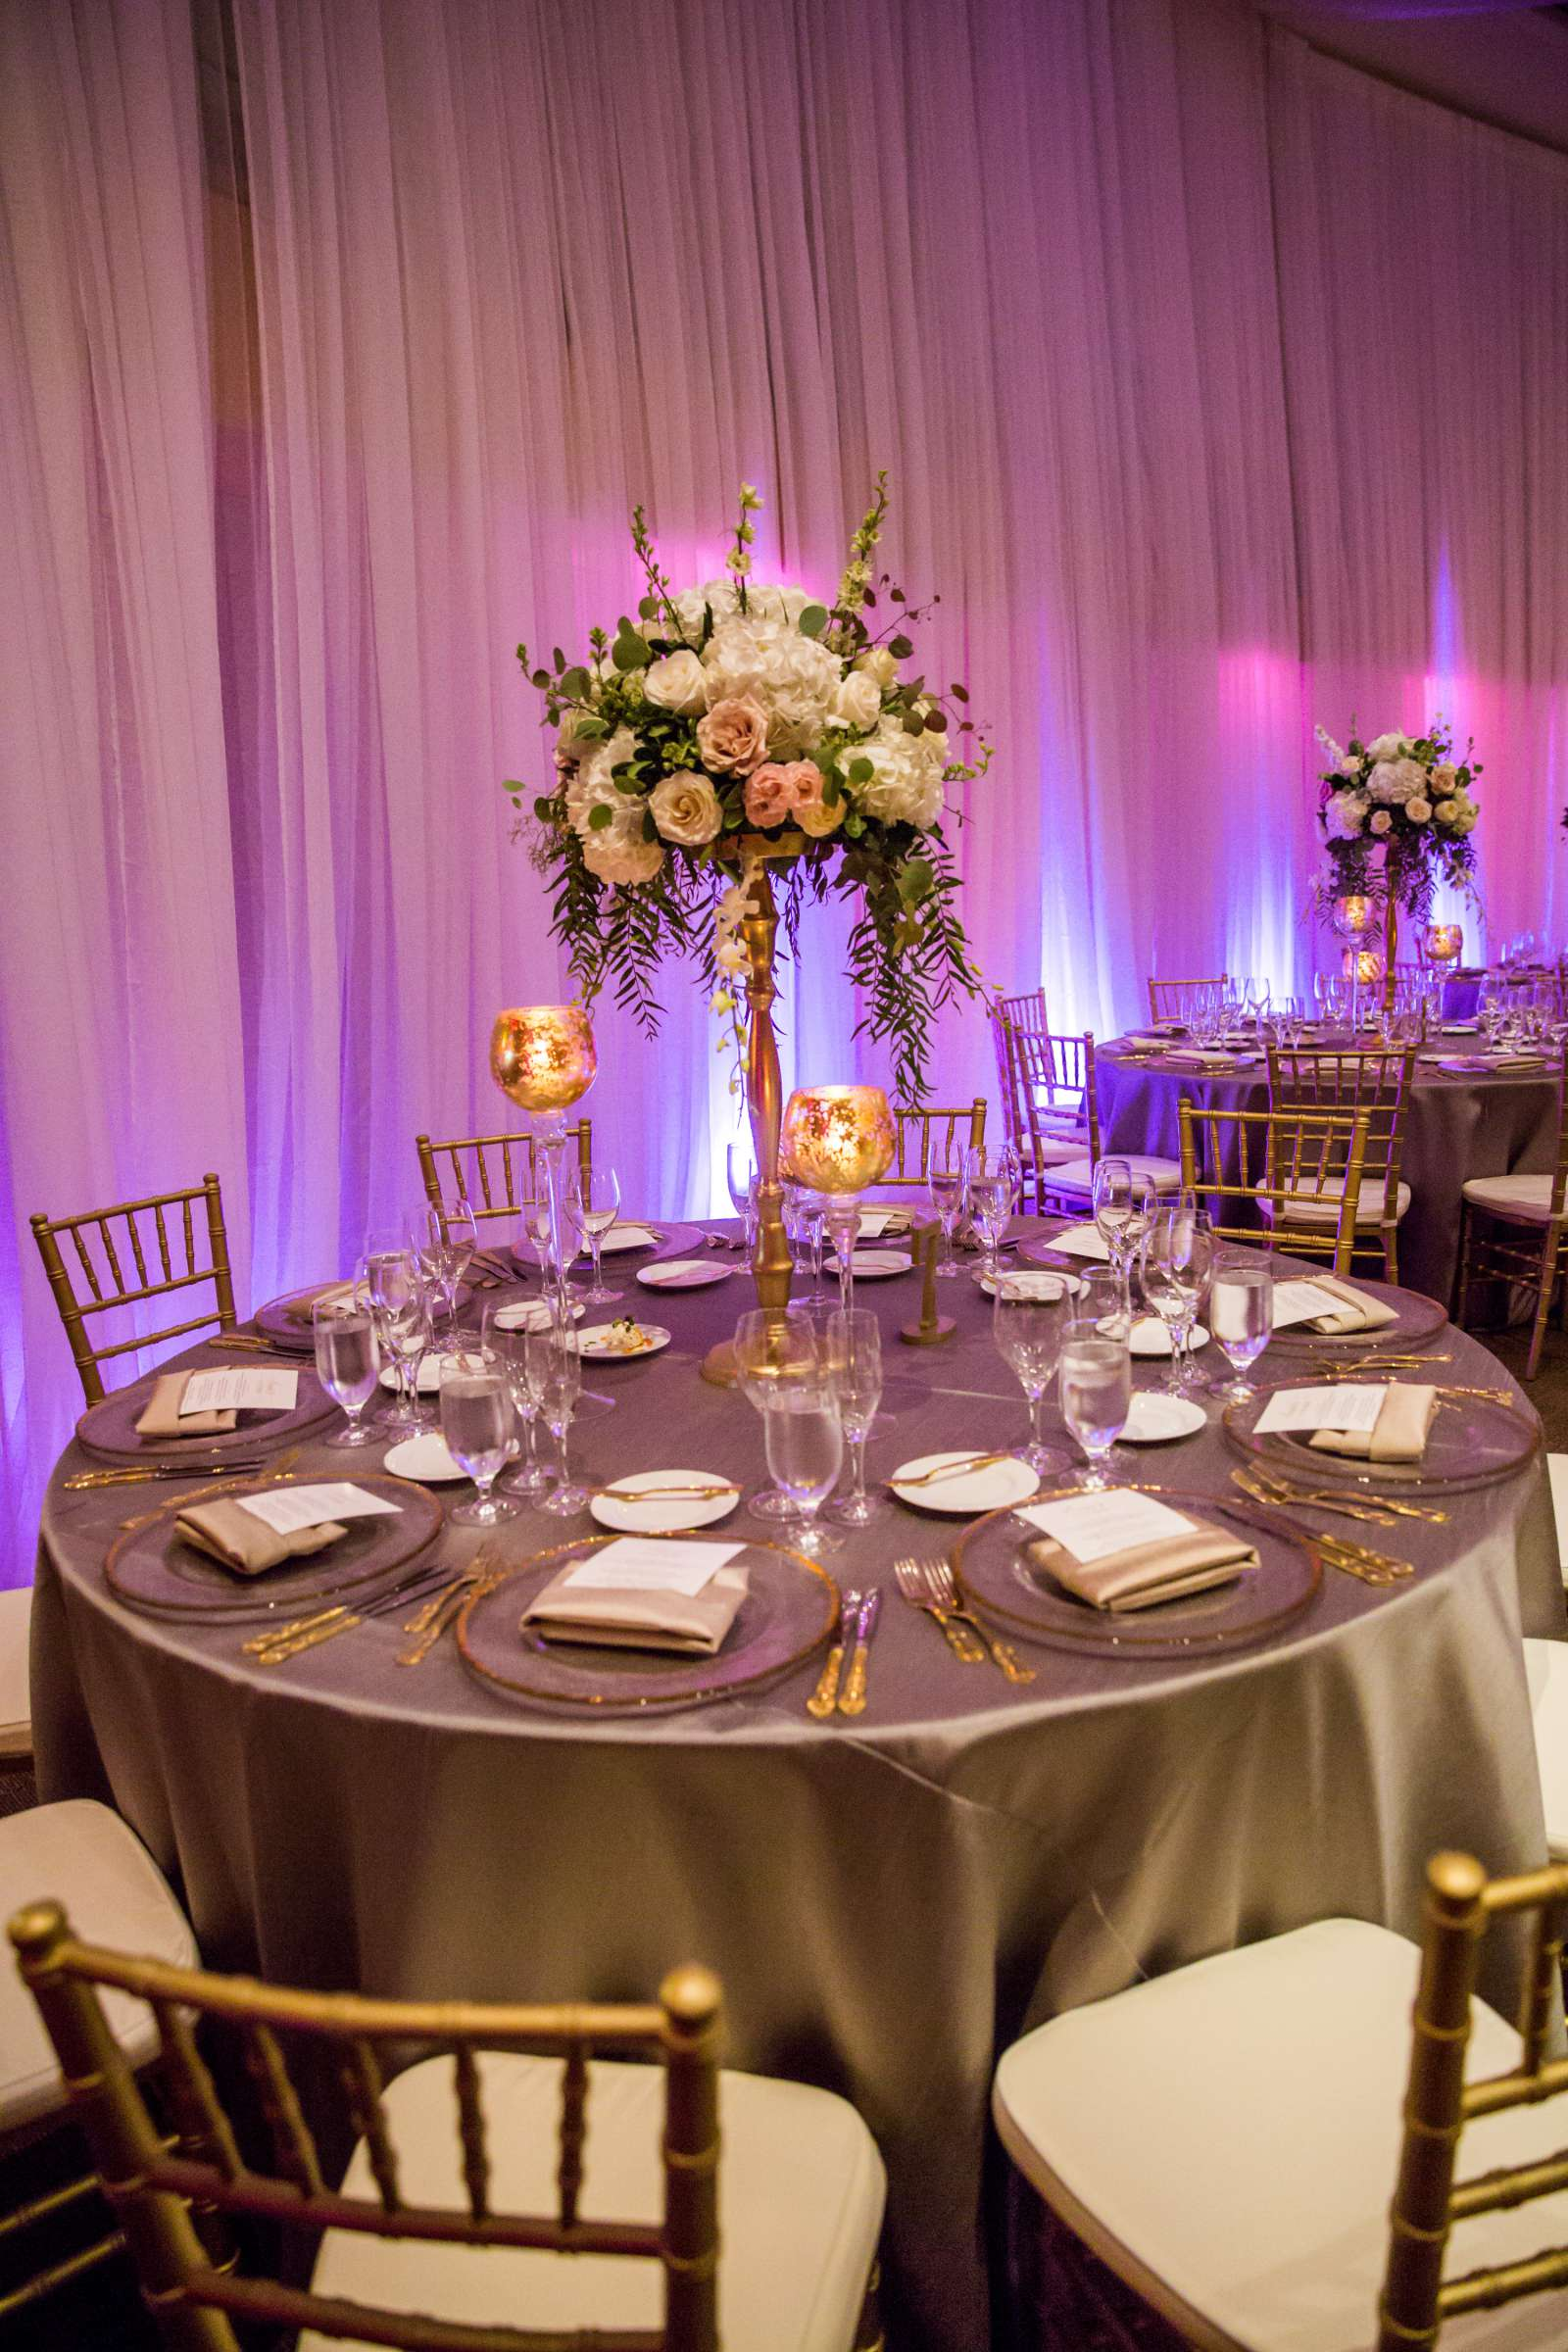 Scripps Seaside Forum Wedding coordinated by Lavish Weddings, Cindy and Justin Wedding Photo #381964 by True Photography